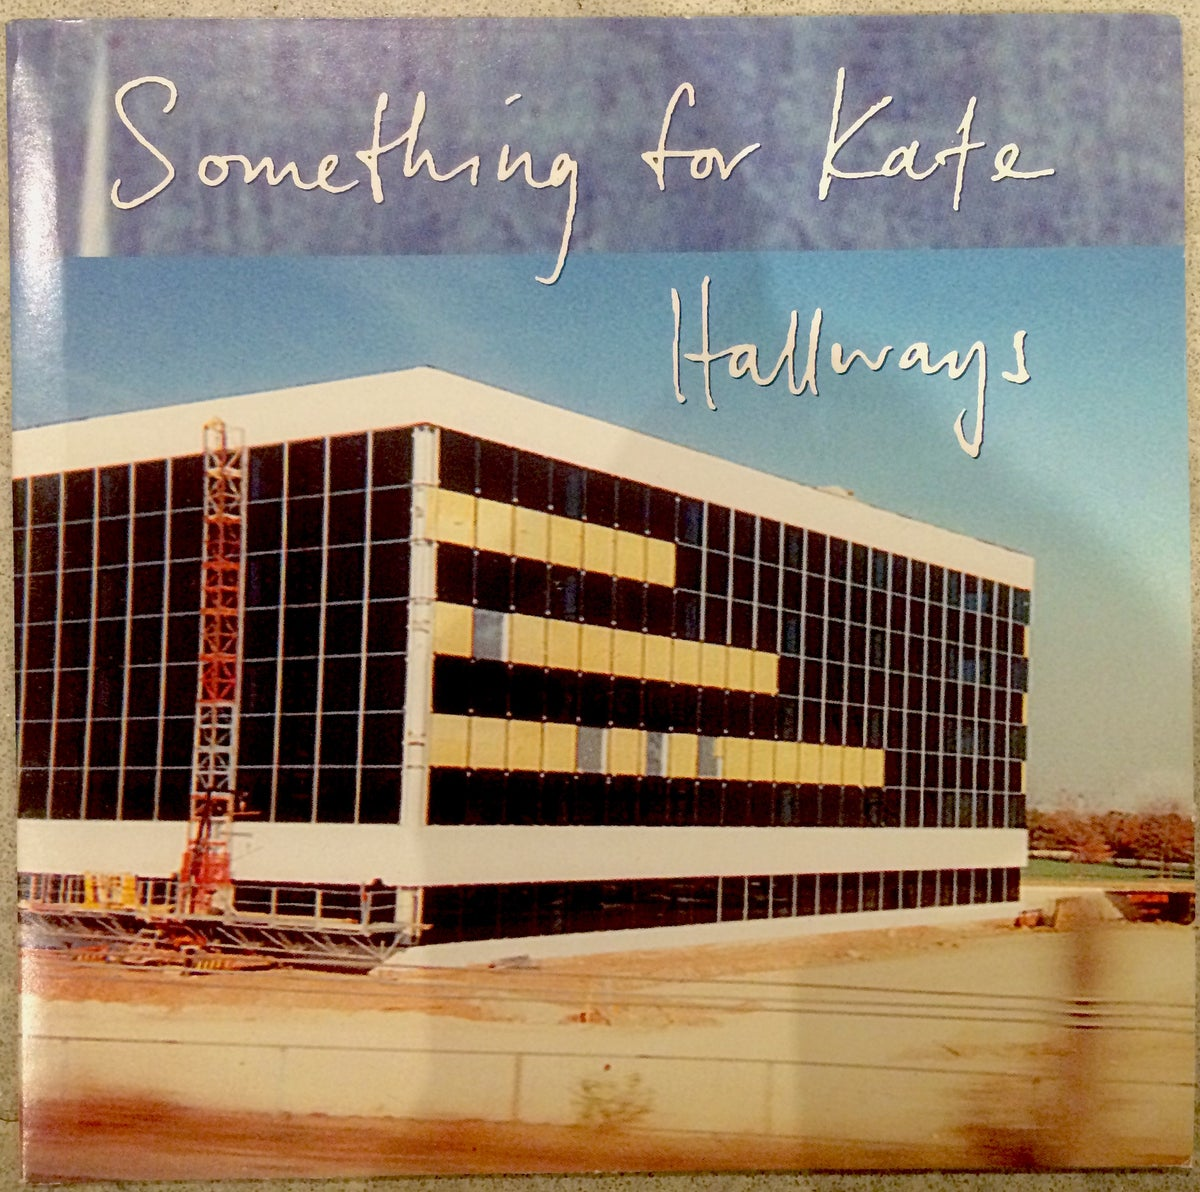 Something for Kate - 'Hallways' 7 inch vinyl single - ORIGINAL PRESSING